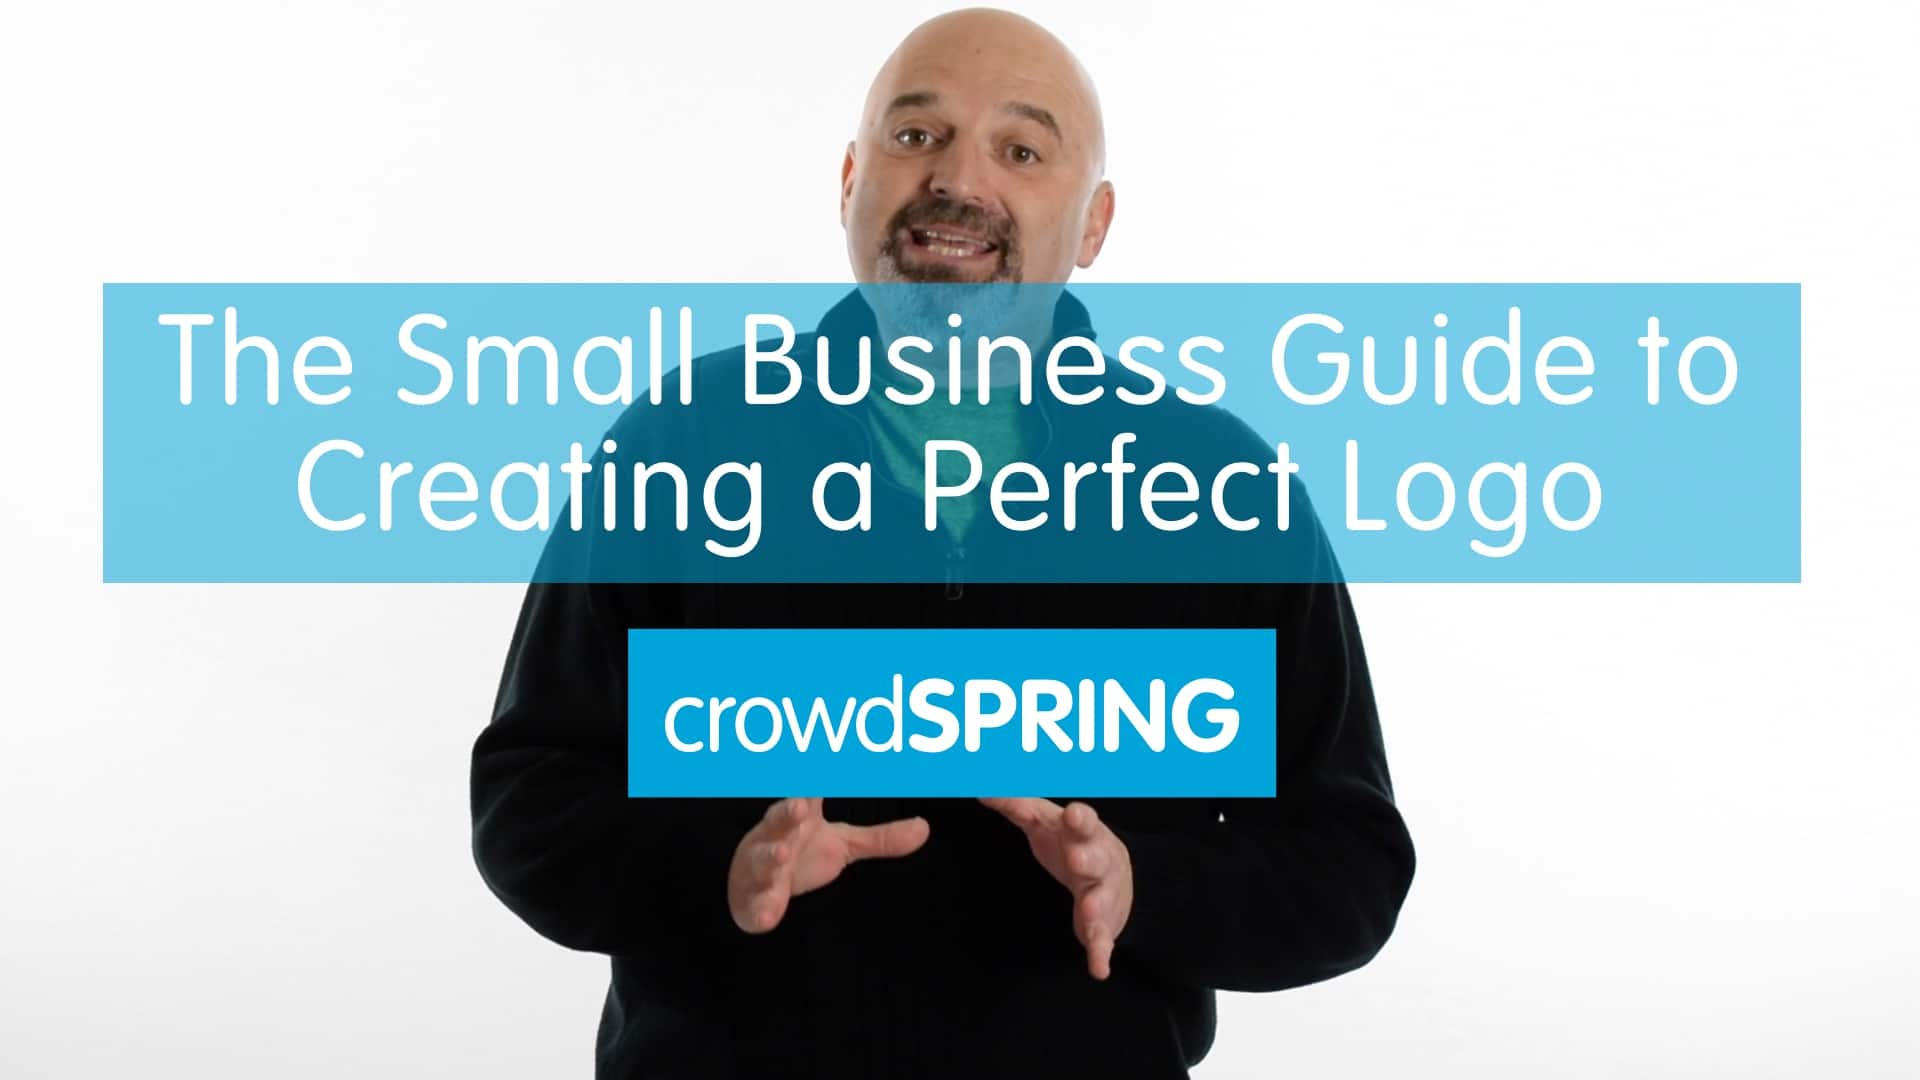 The Small Business Guide To Creating a Perfect Logo